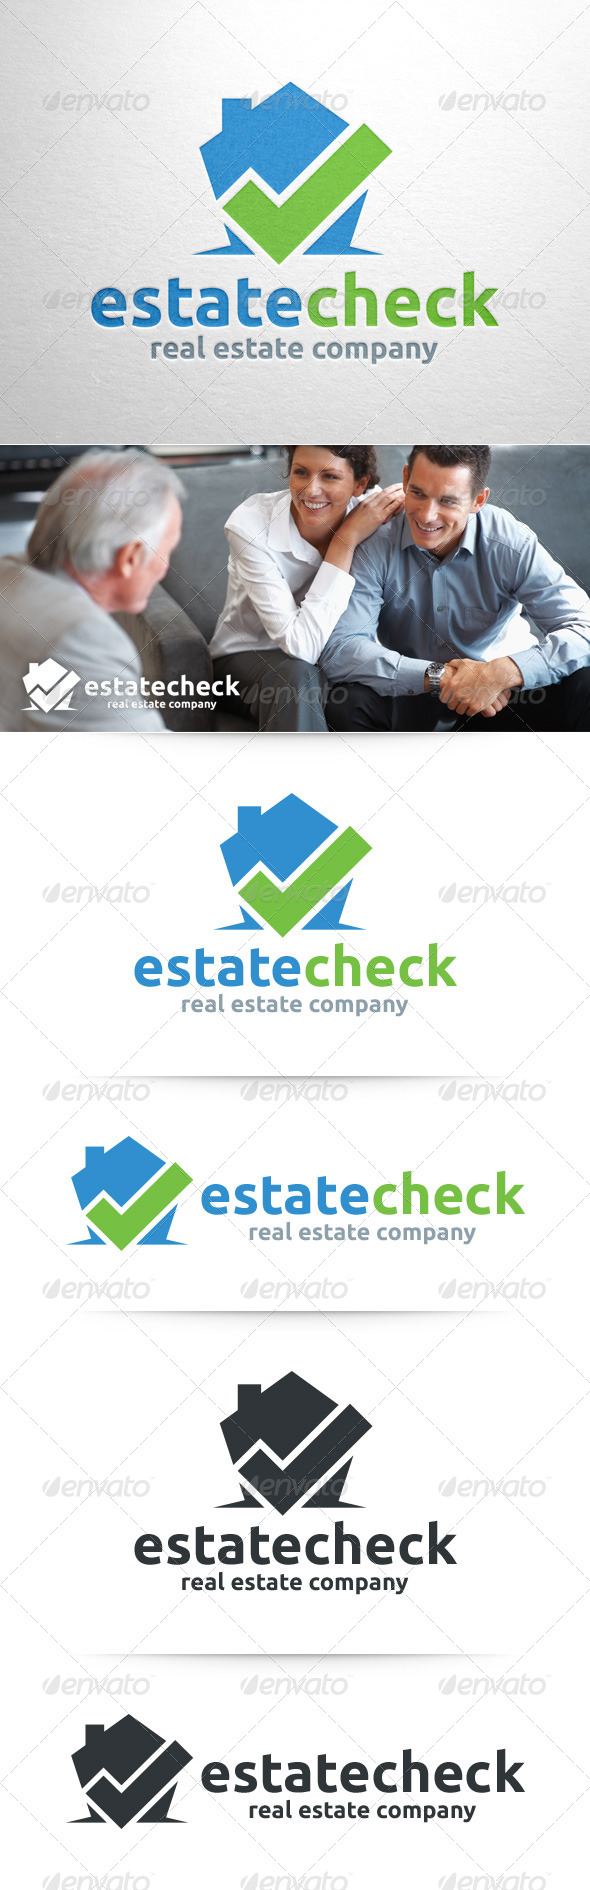 GraphicRiver Estate Check Logo Template 8343900